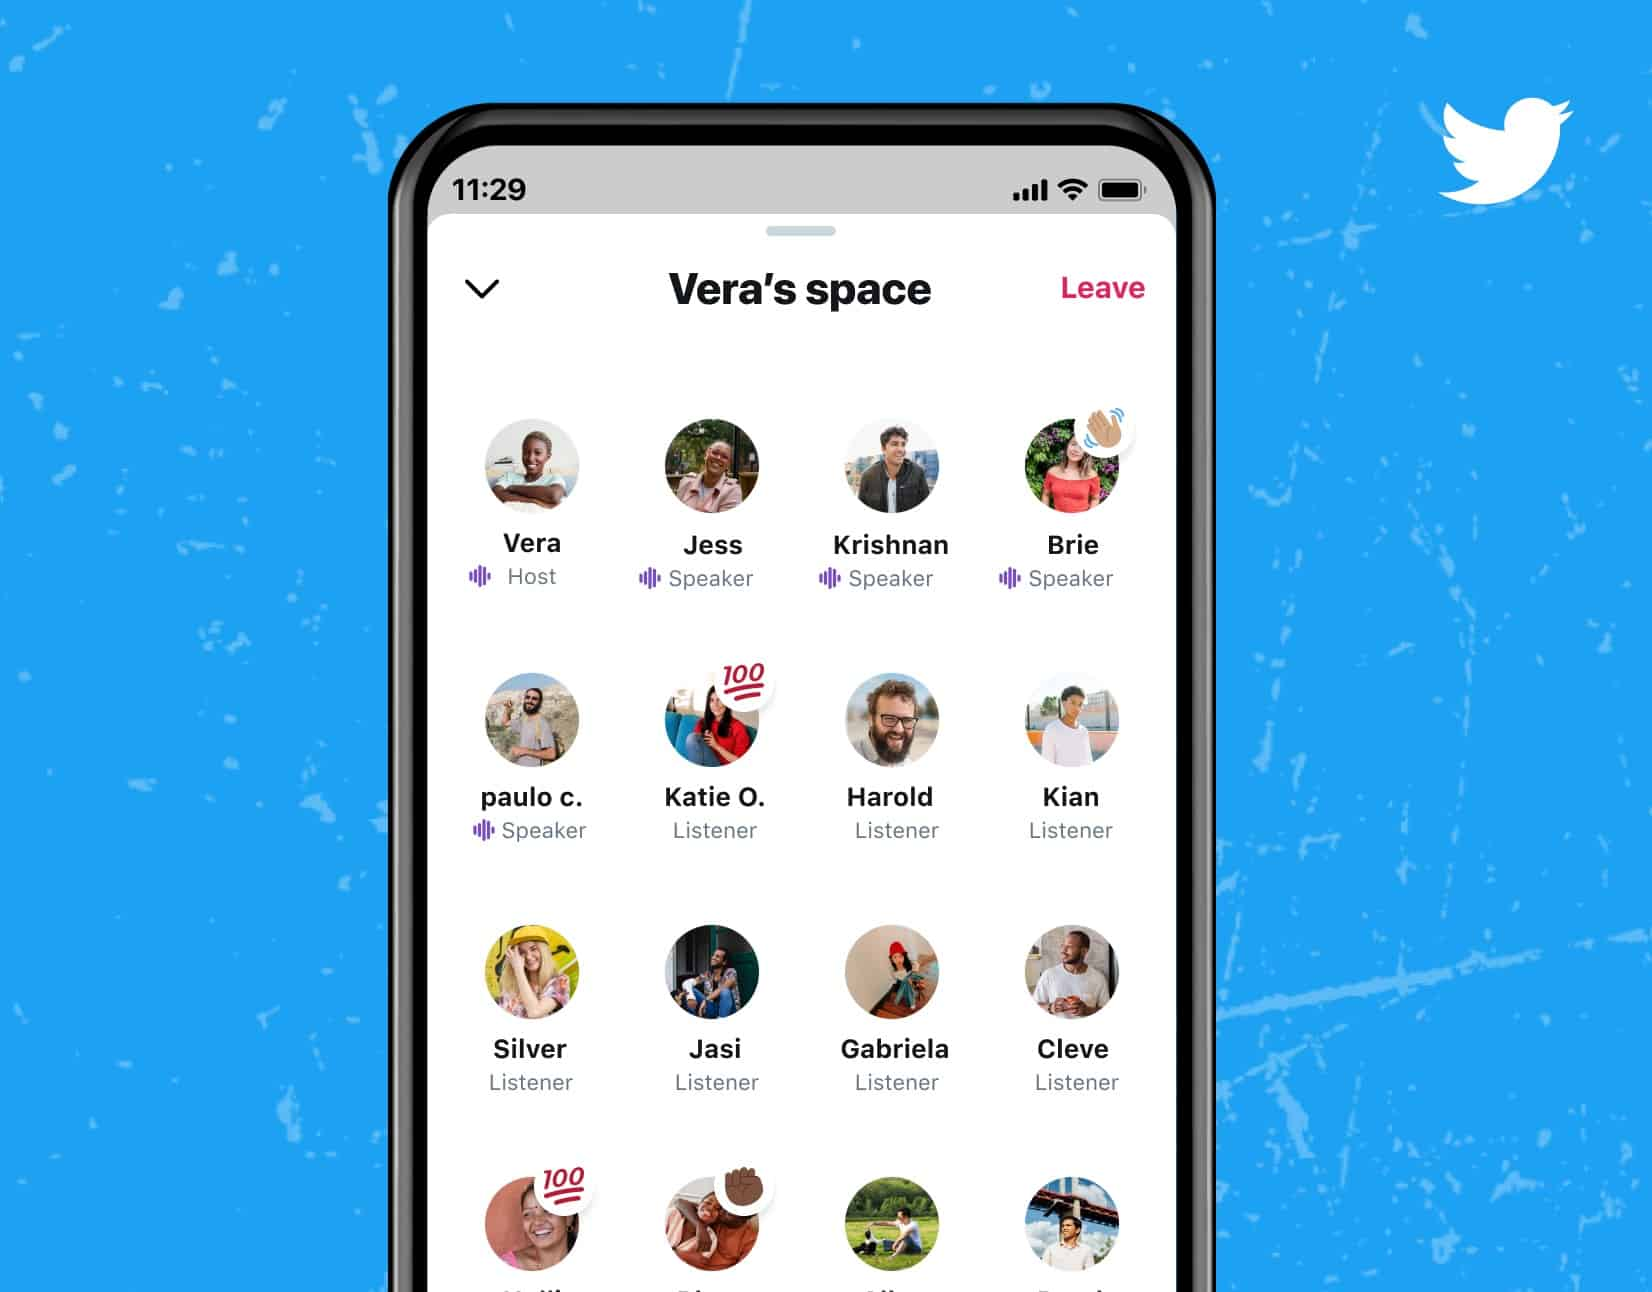 Twitter spaces are rolling out widely, but with a weird limitation